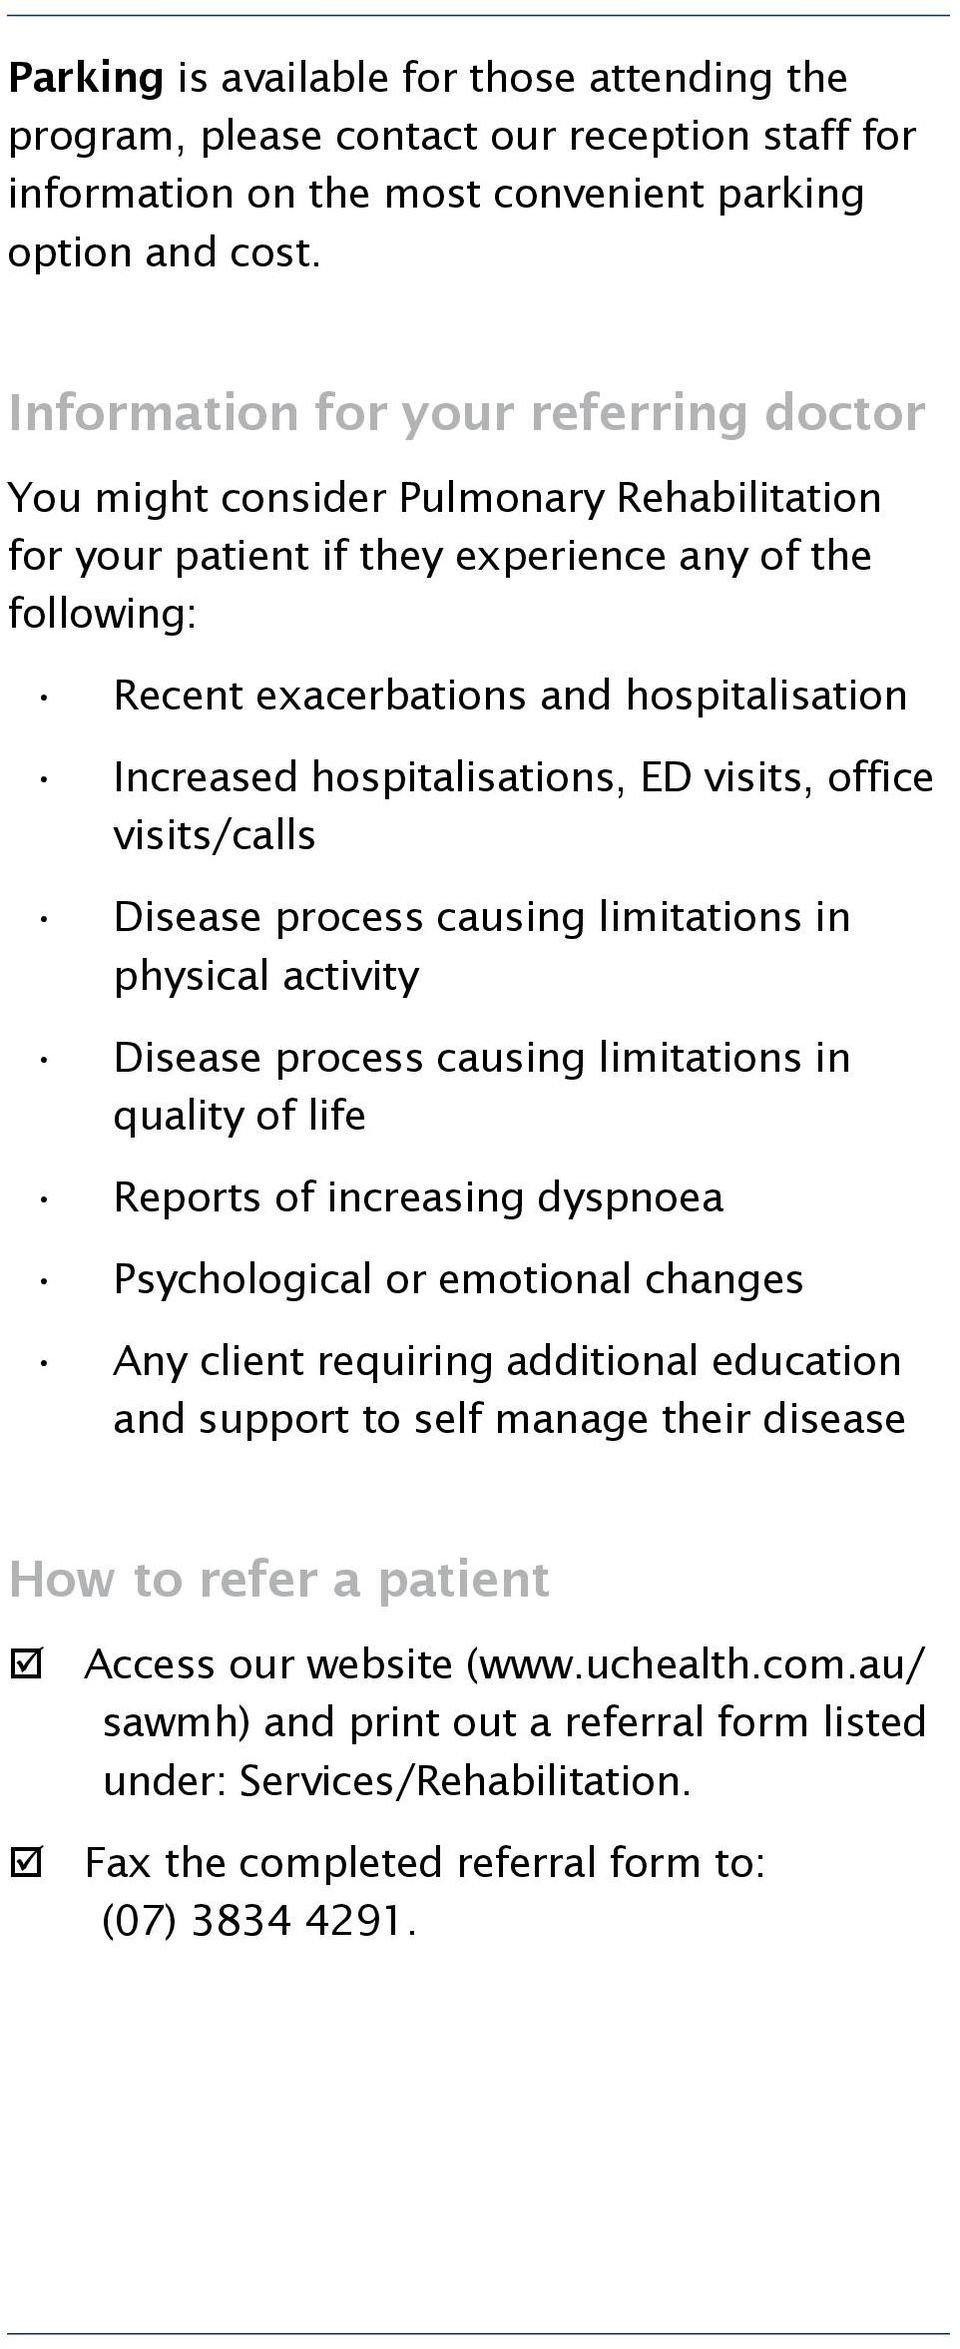 hospitalisations, ED visits, office visits/calls Disease process causing limitations in physical activity Disease process causing limitations in quality of life Reports of increasing dyspnoea